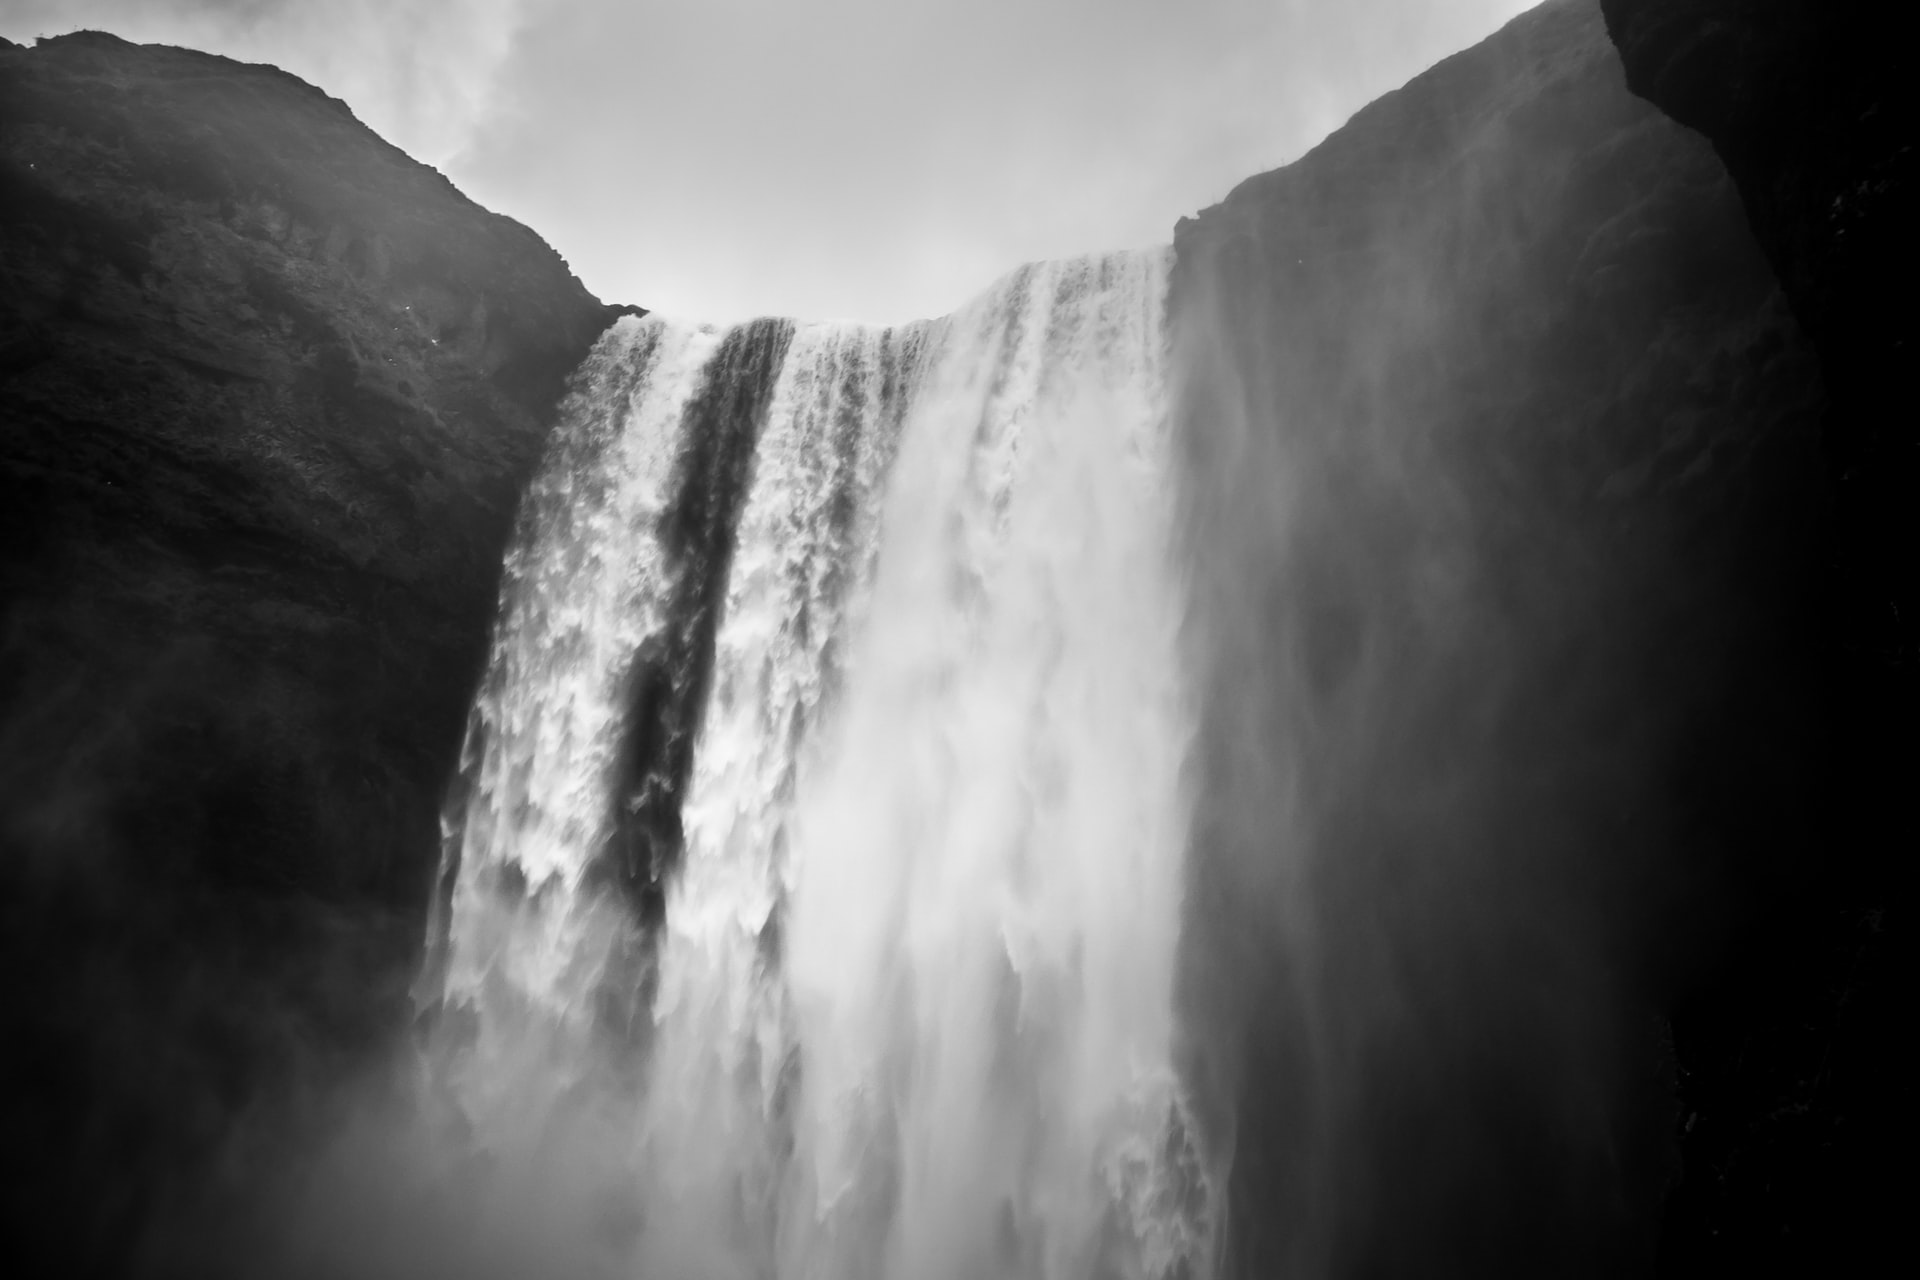 Black and white shot of a large waterfall